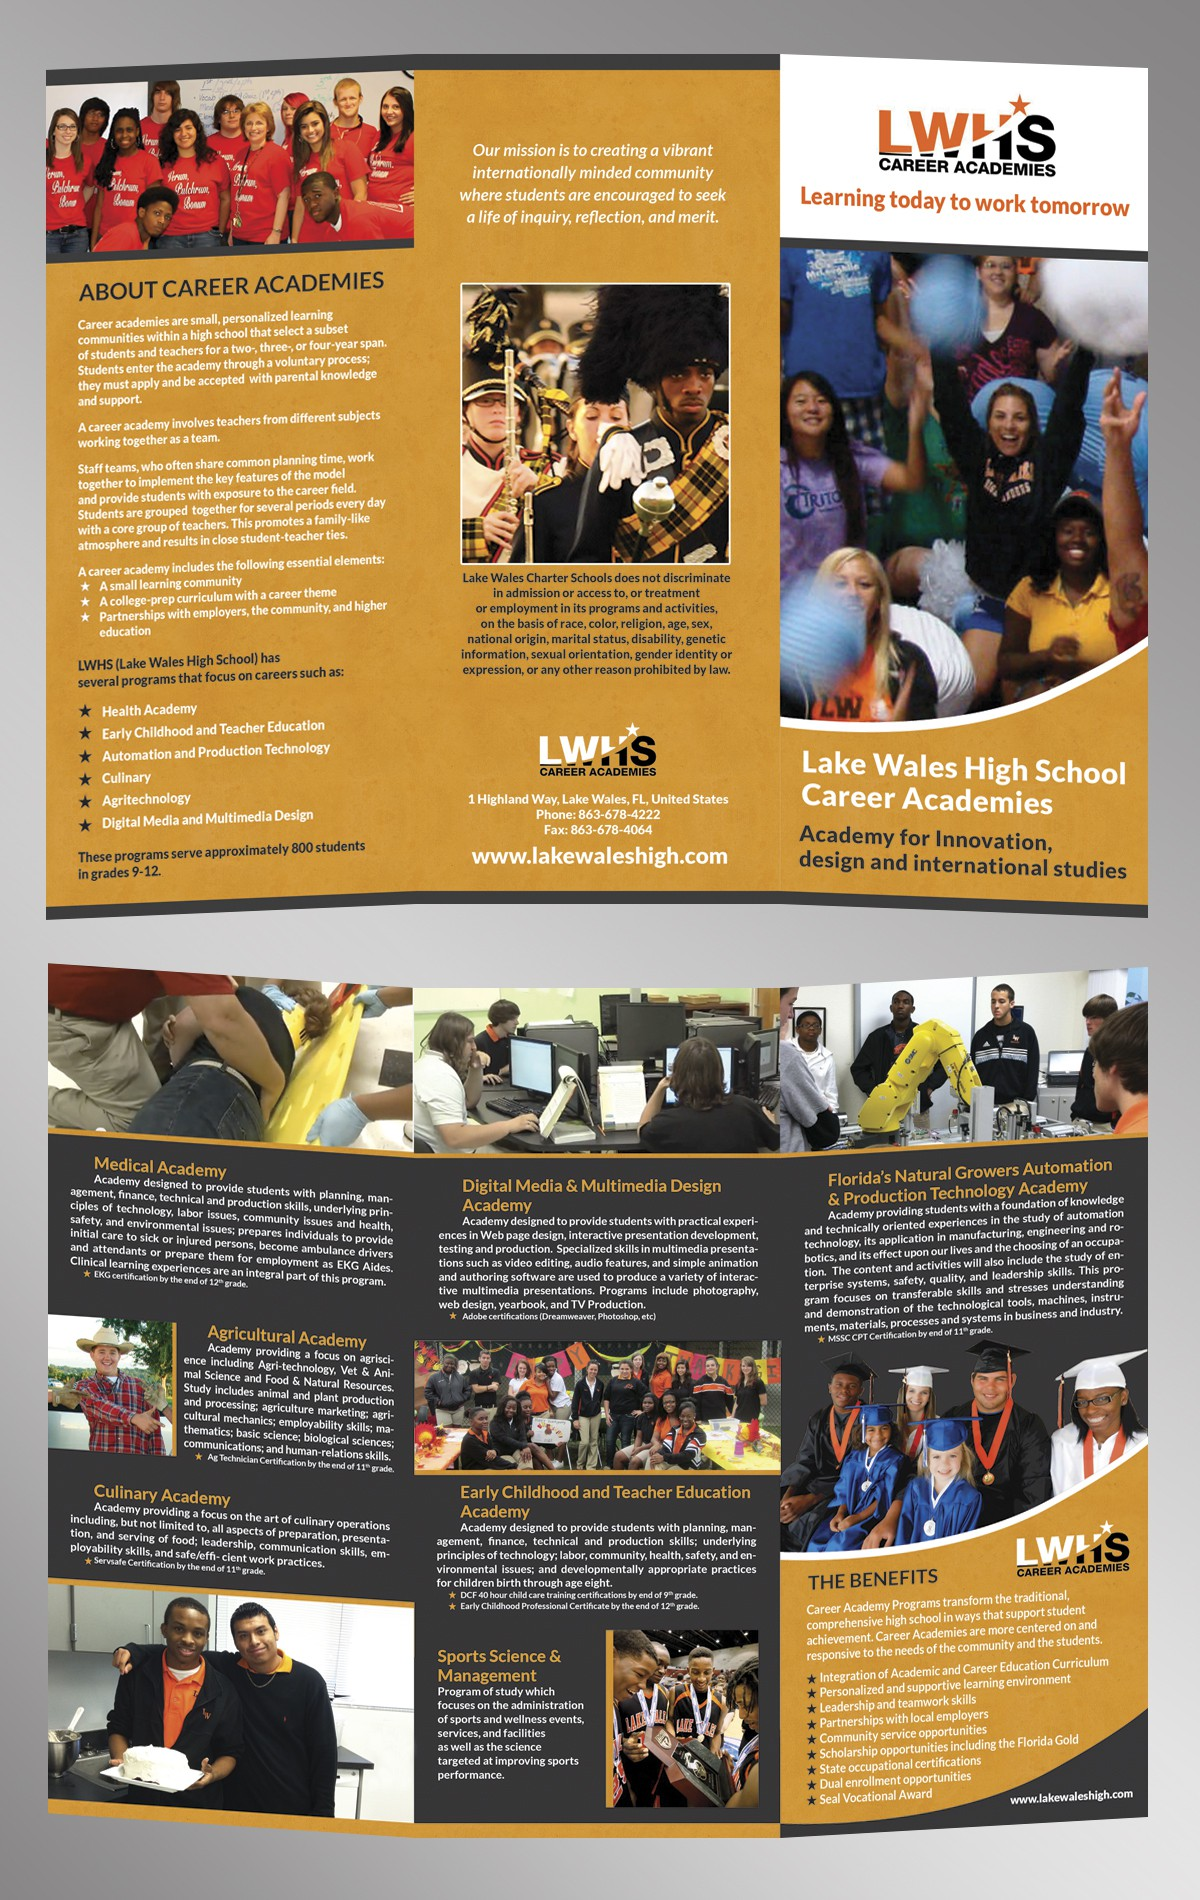 Create the next brochure design for Lake Wales High School Career Academies